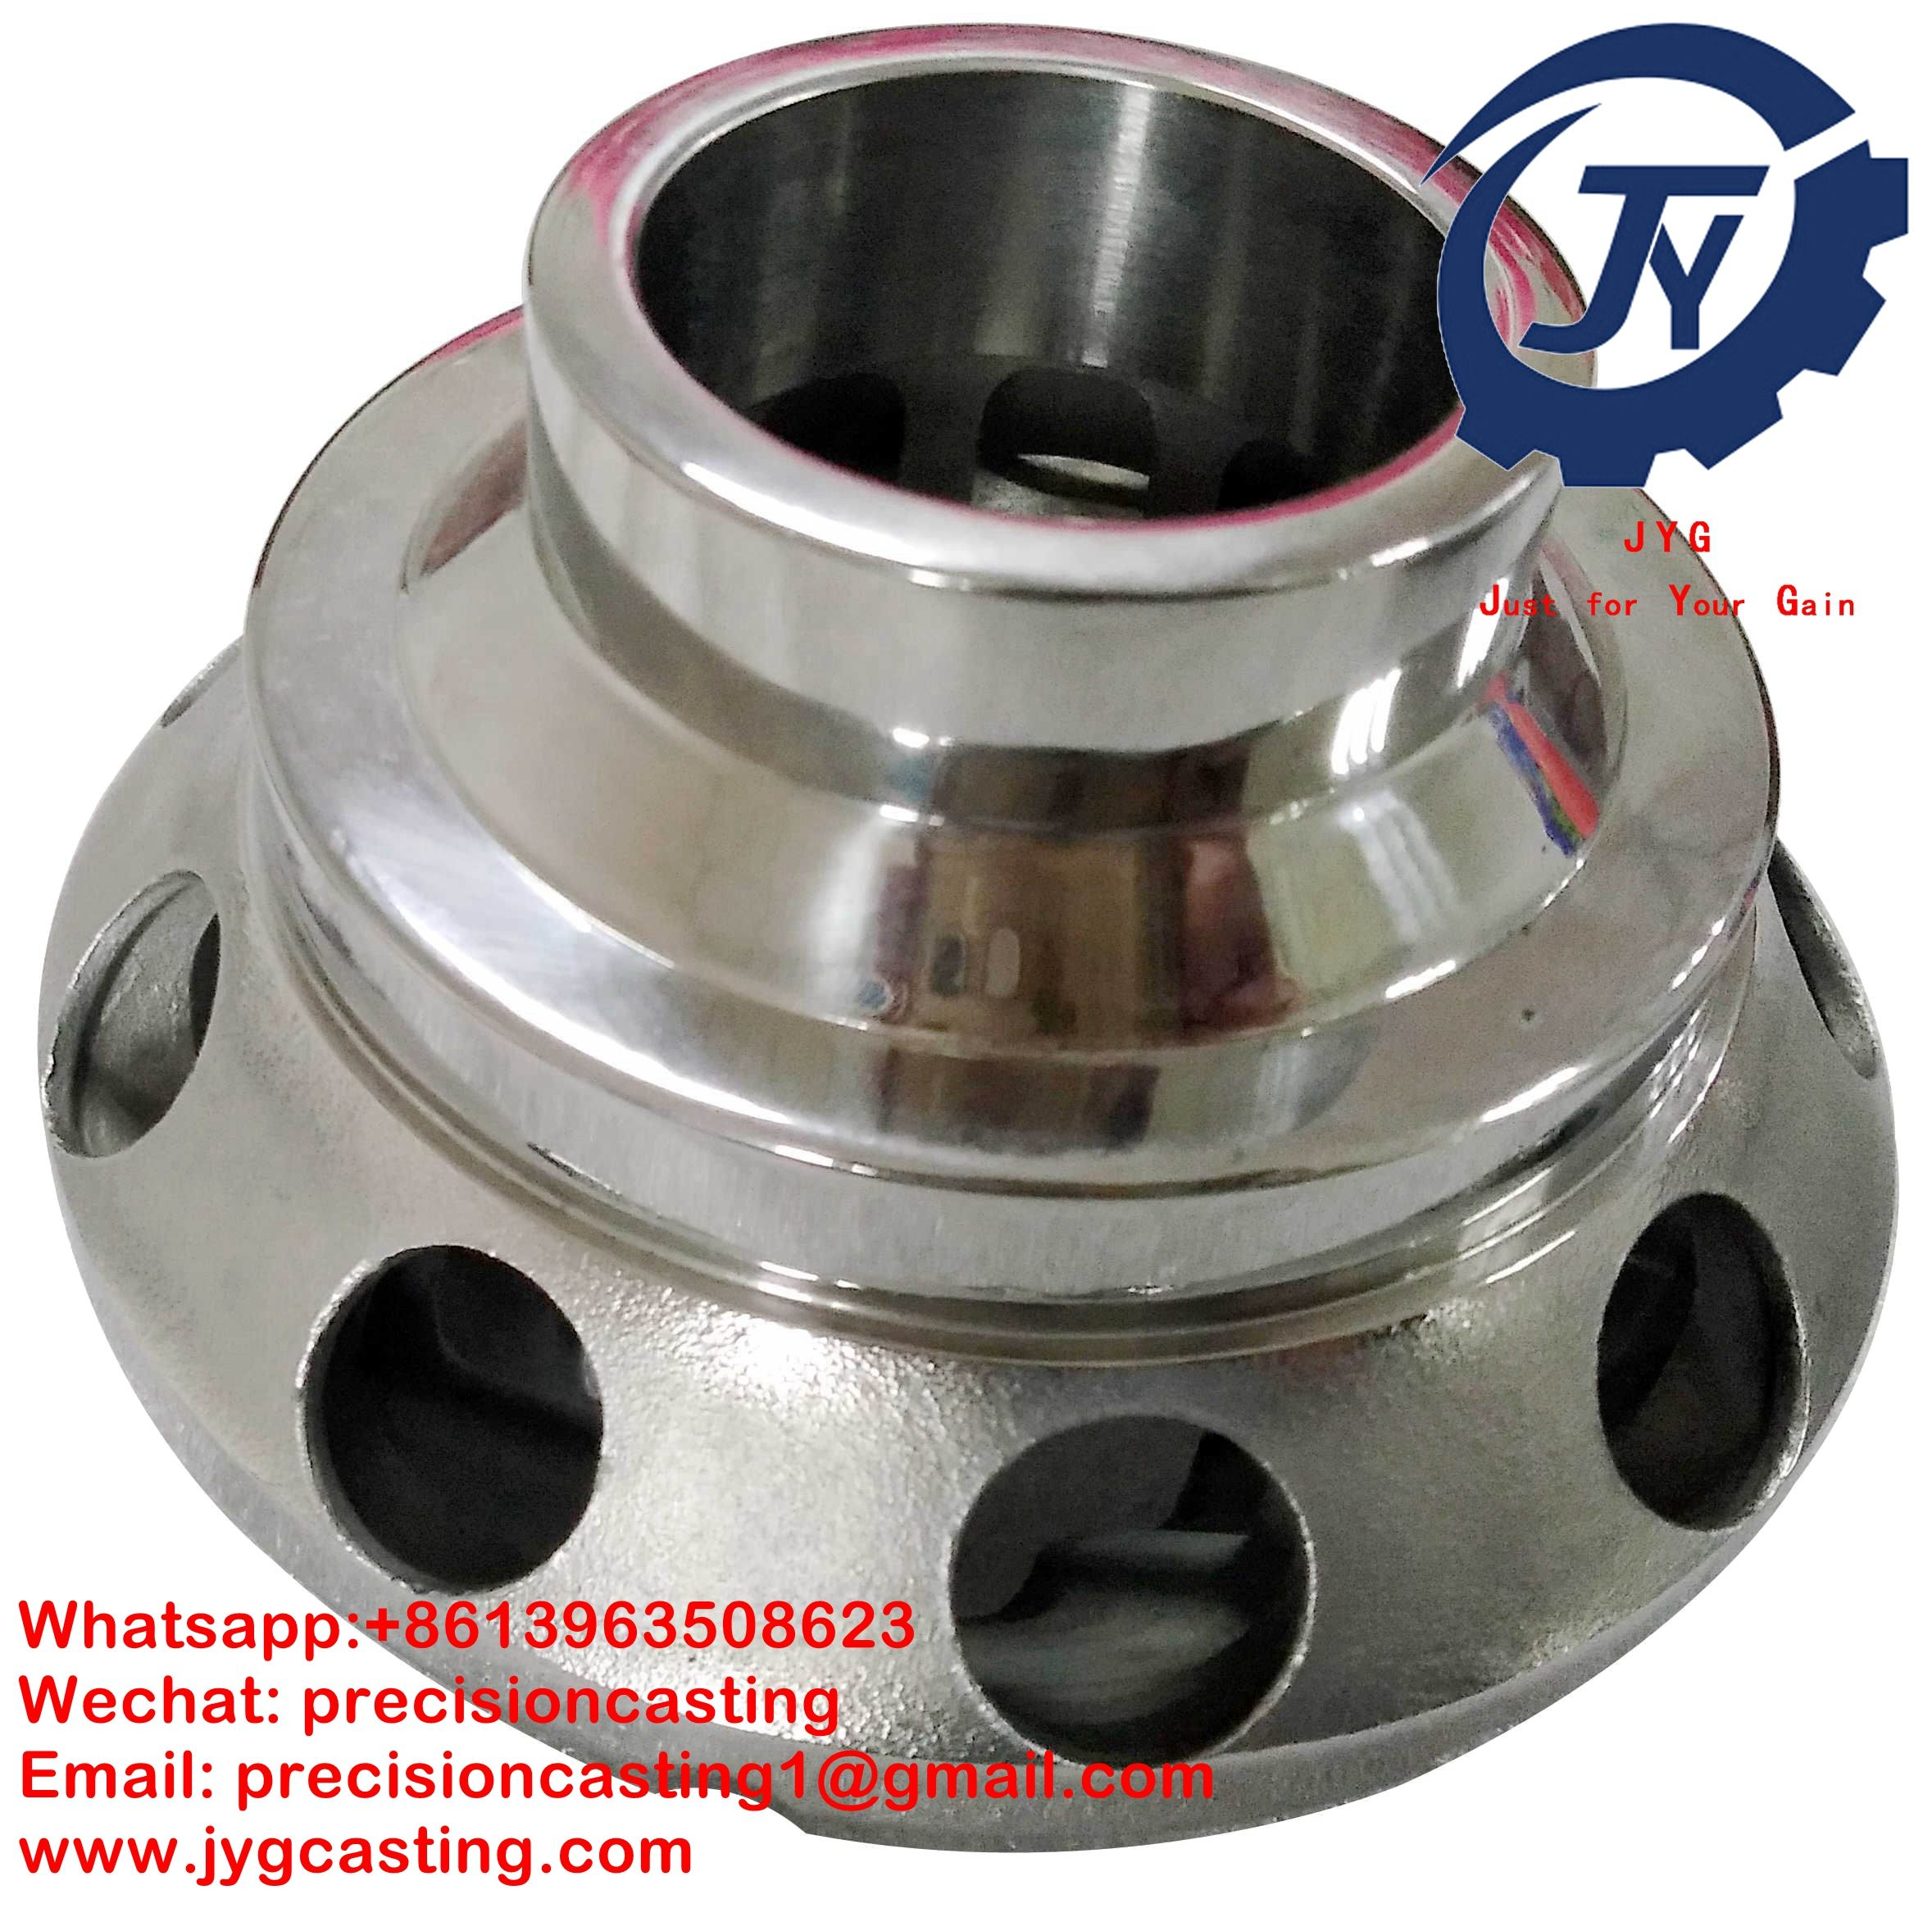 Shandong JYG Precision Casting is specialized in precision casting